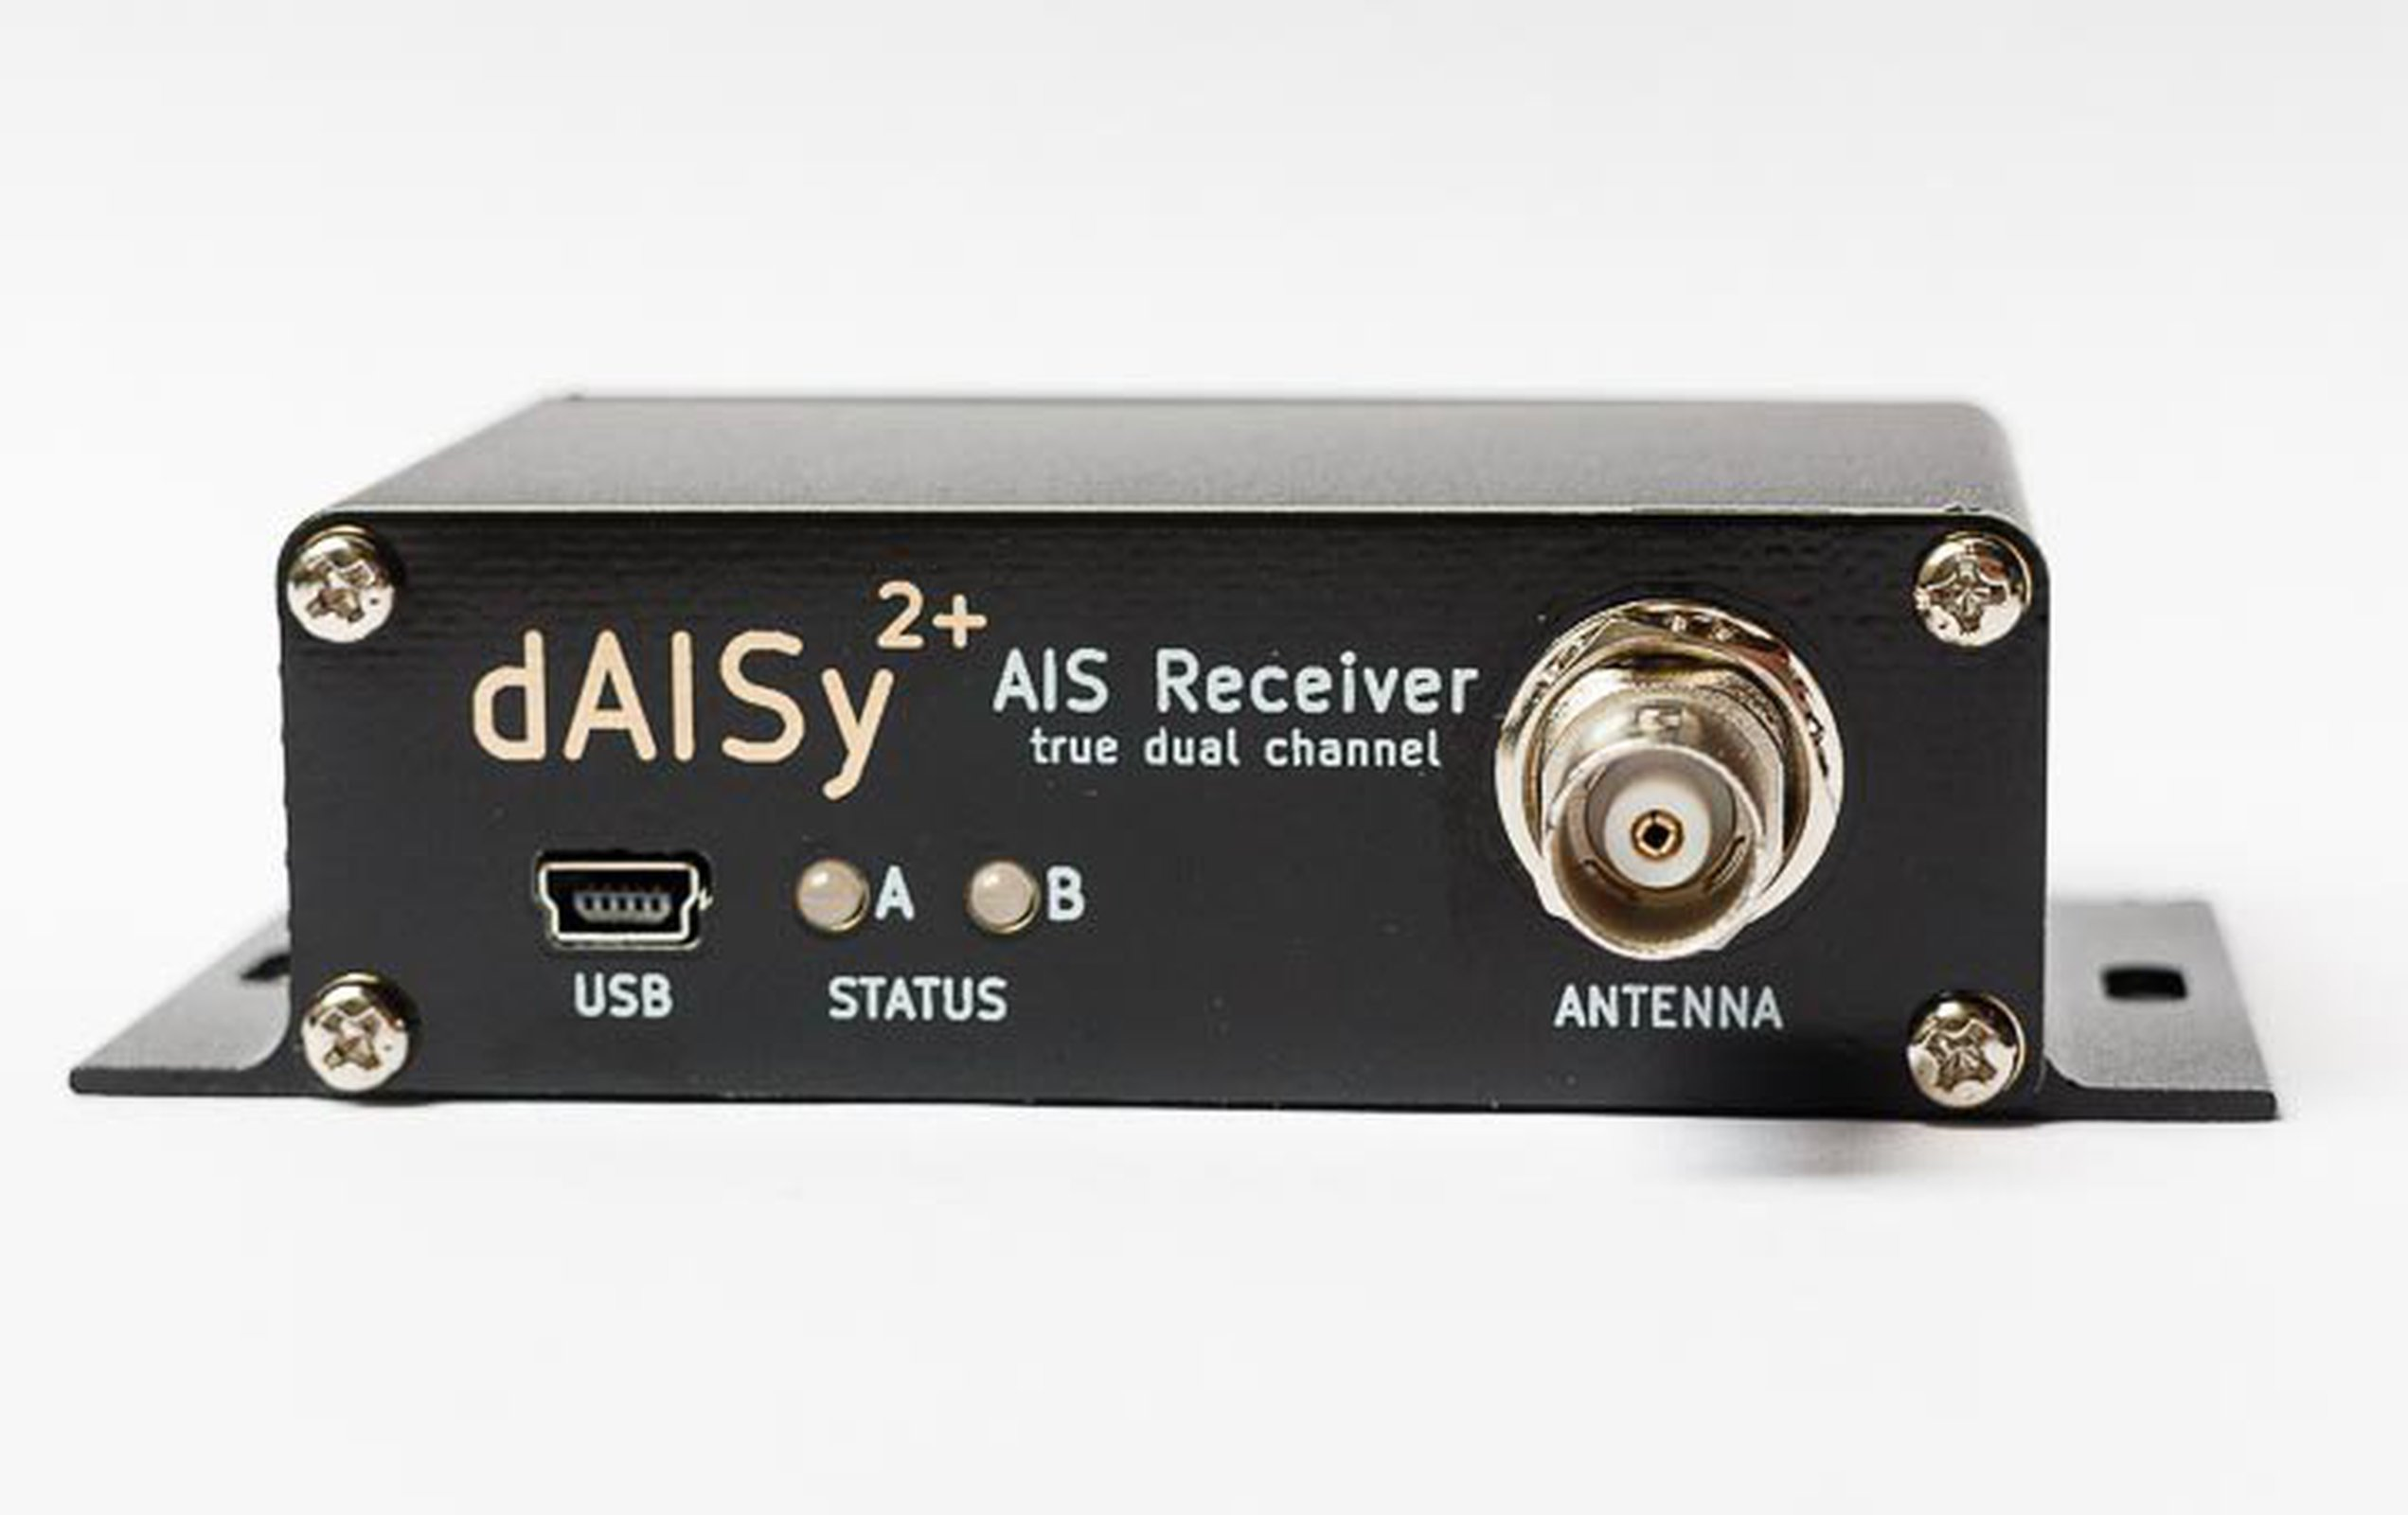 Daisy 2 Dual Channel Ais Receiver With Nmea 0183 From Wegmatt Llc Wiring Diagram